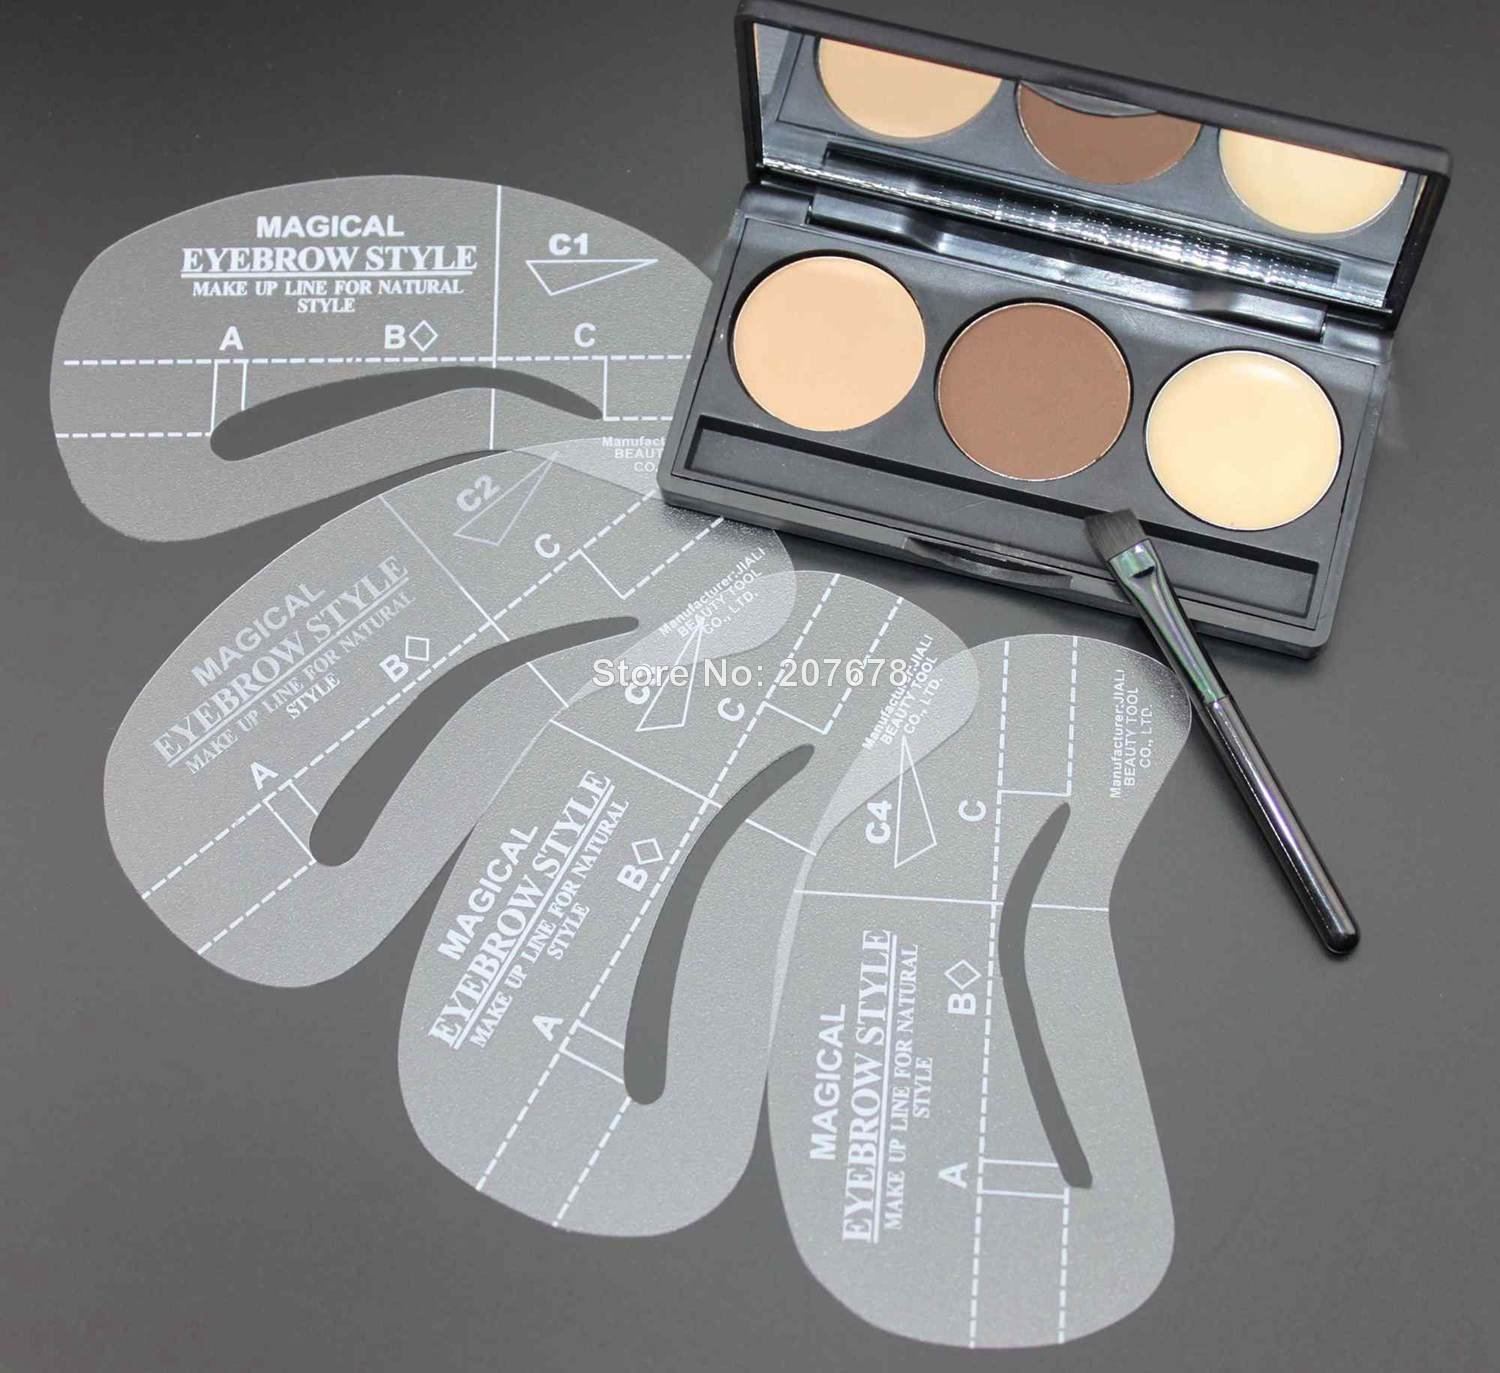 2014 NEW Eyebrow Shaping Powder Palette + 4 Stencils + Eyebrow Wax Makeup Kit